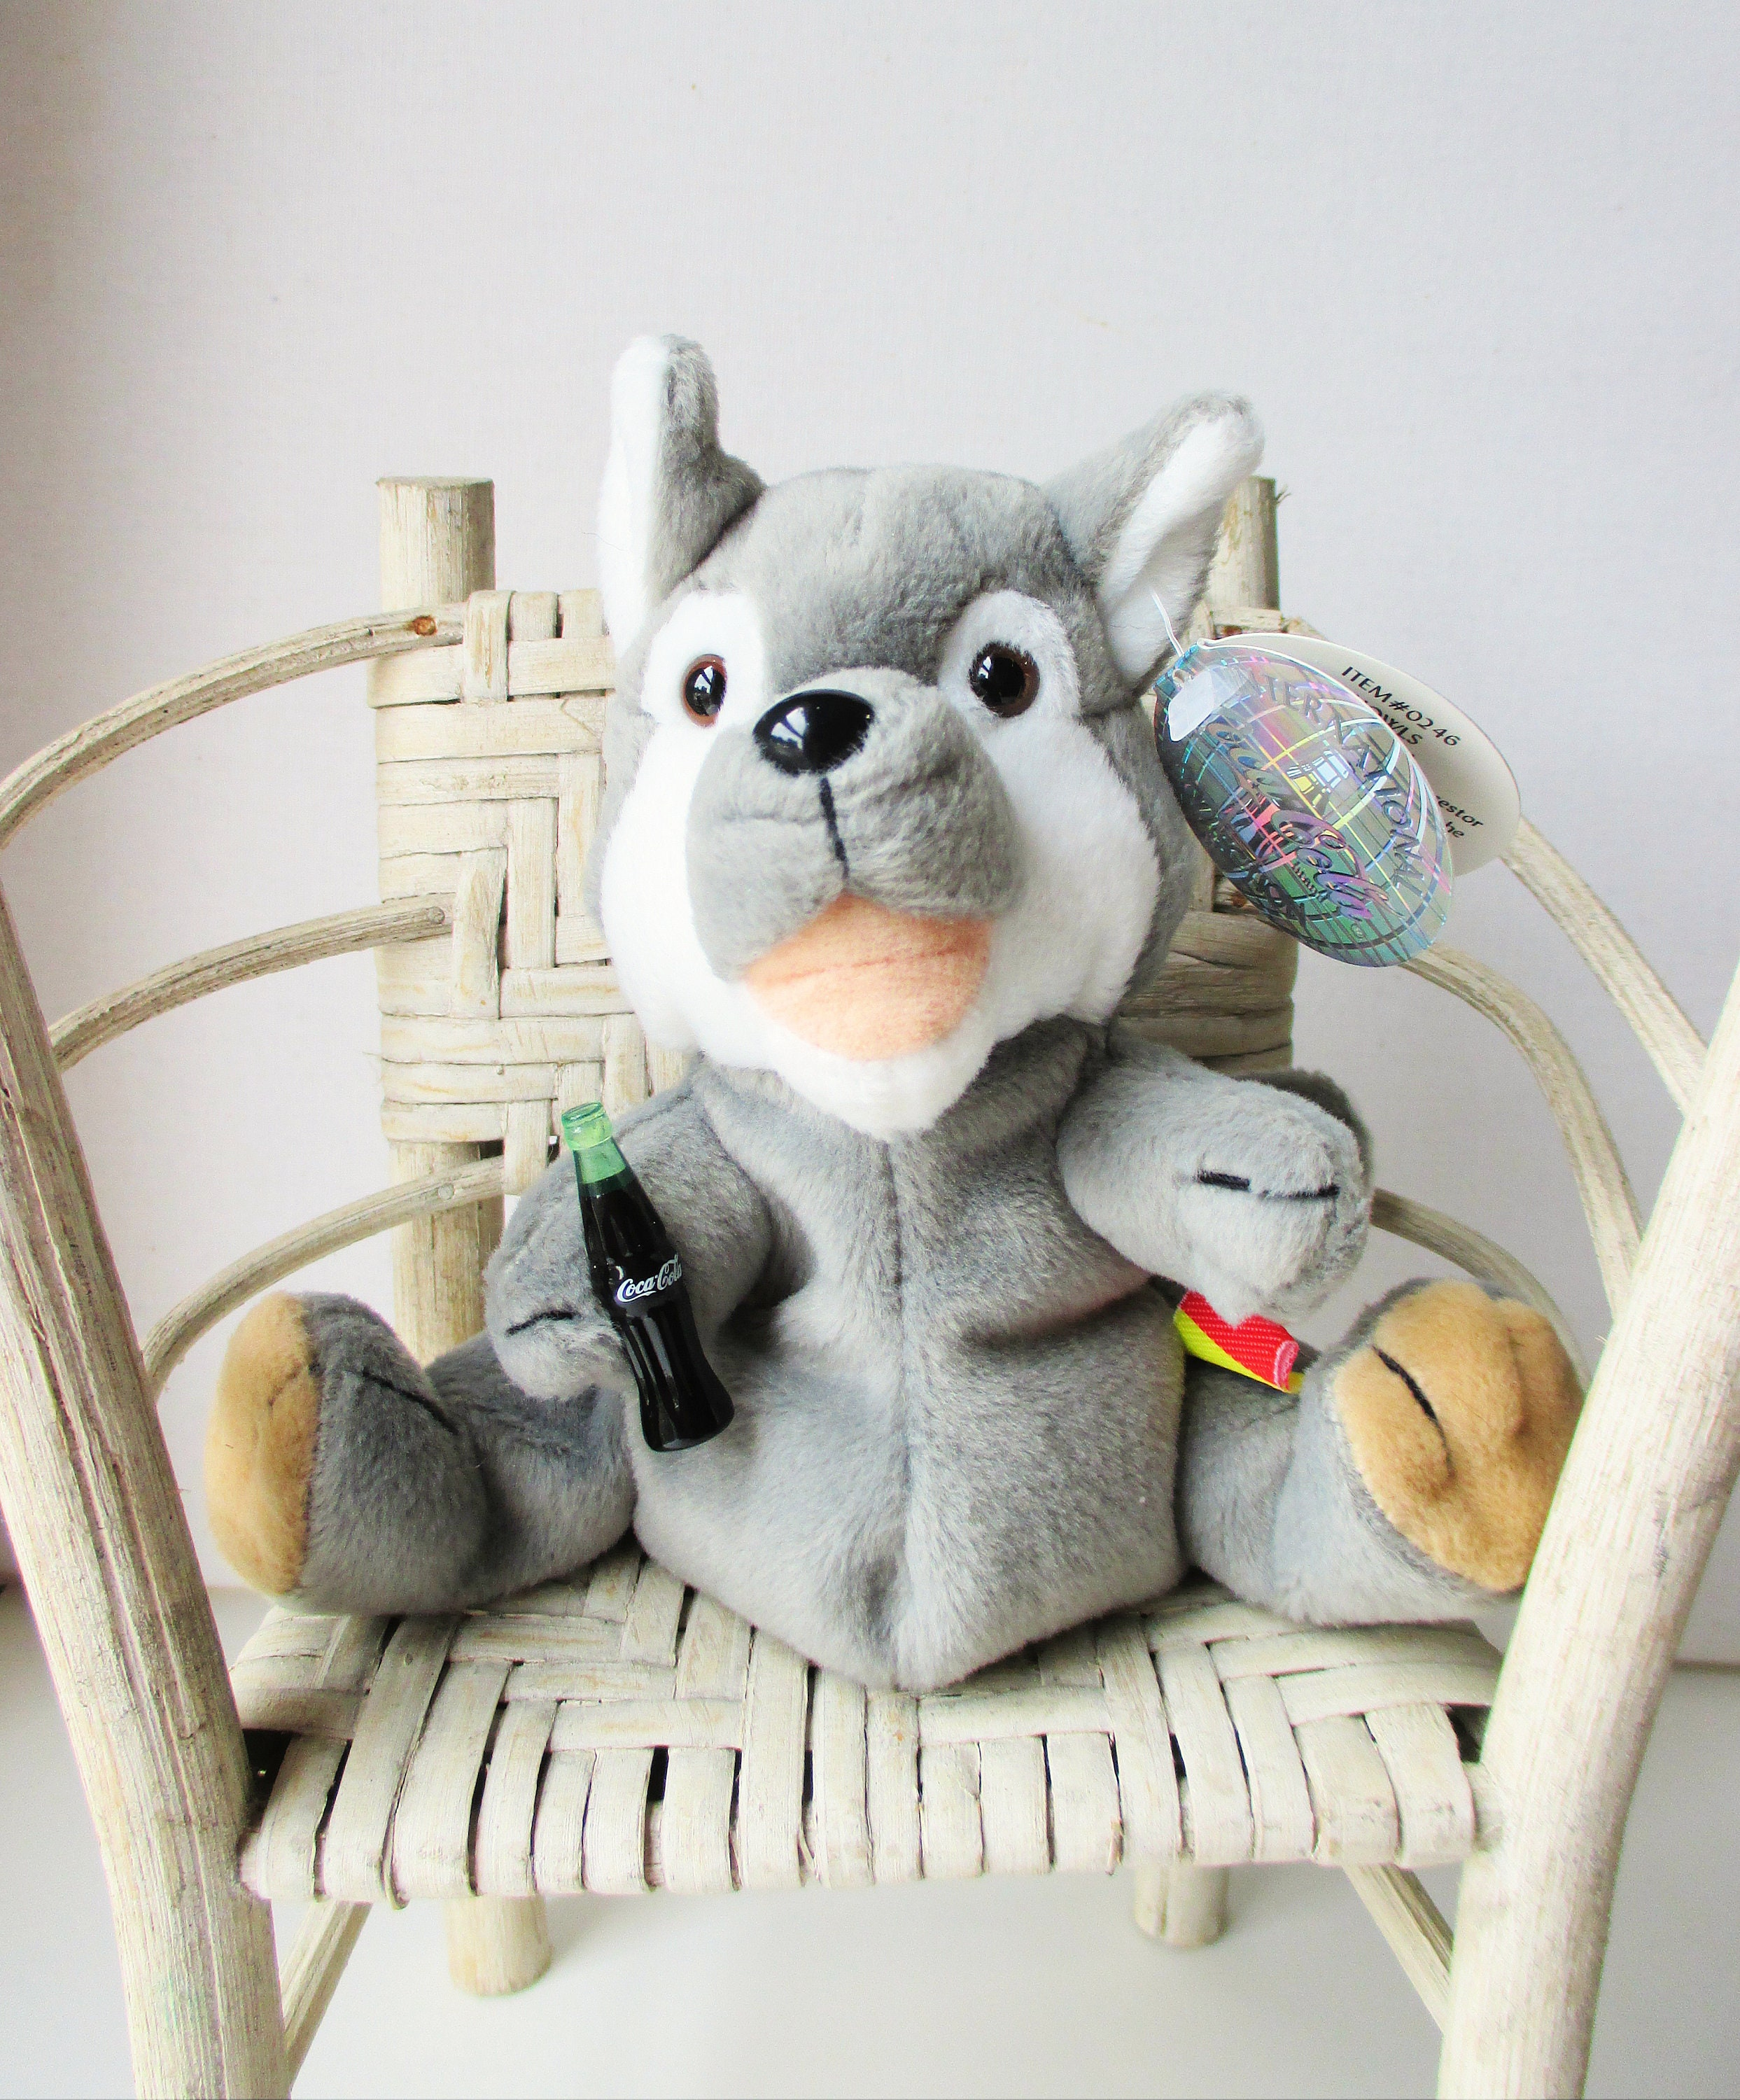 Magnificent Vintage Coca Cola Bean Bag Plush Howls The Grey Wolf 1999 Retired International Collection Representing Romania Squirreltailoven Fun Painted Chair Ideas Images Squirreltailovenorg